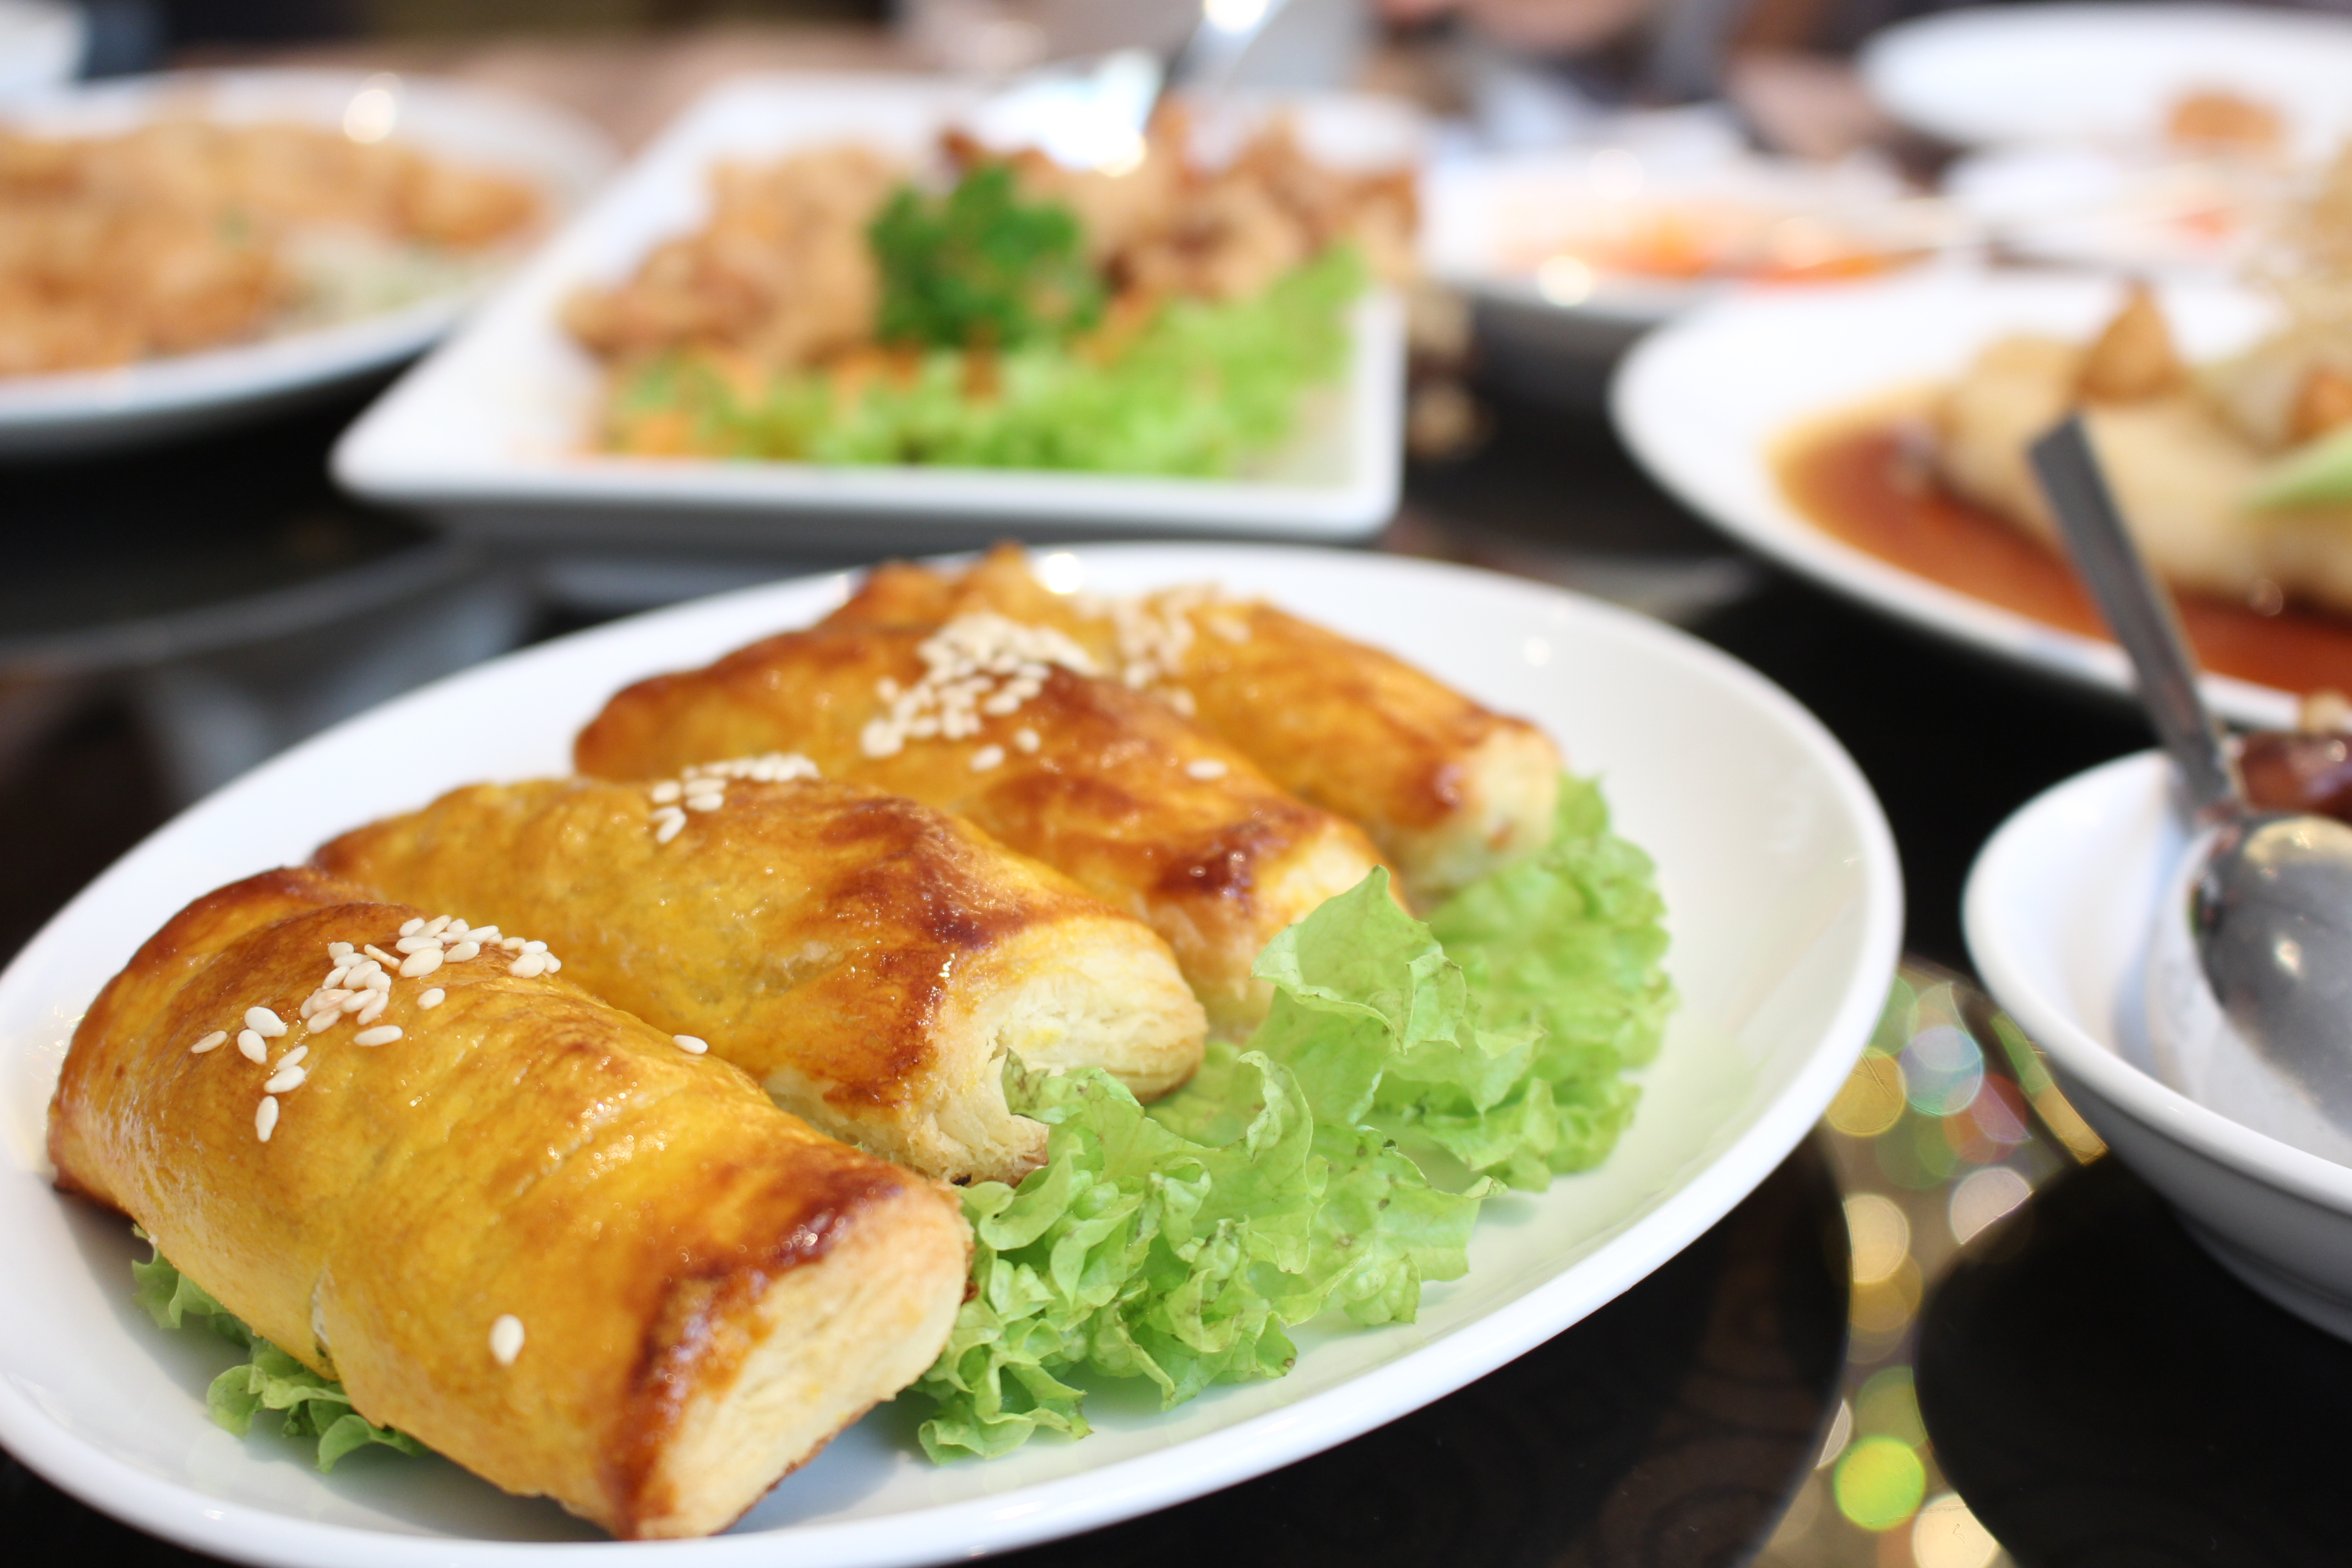 Food review wan li chinese restaurant renaissance johor barhu the place nestled in the renaissance forumfinder Image collections